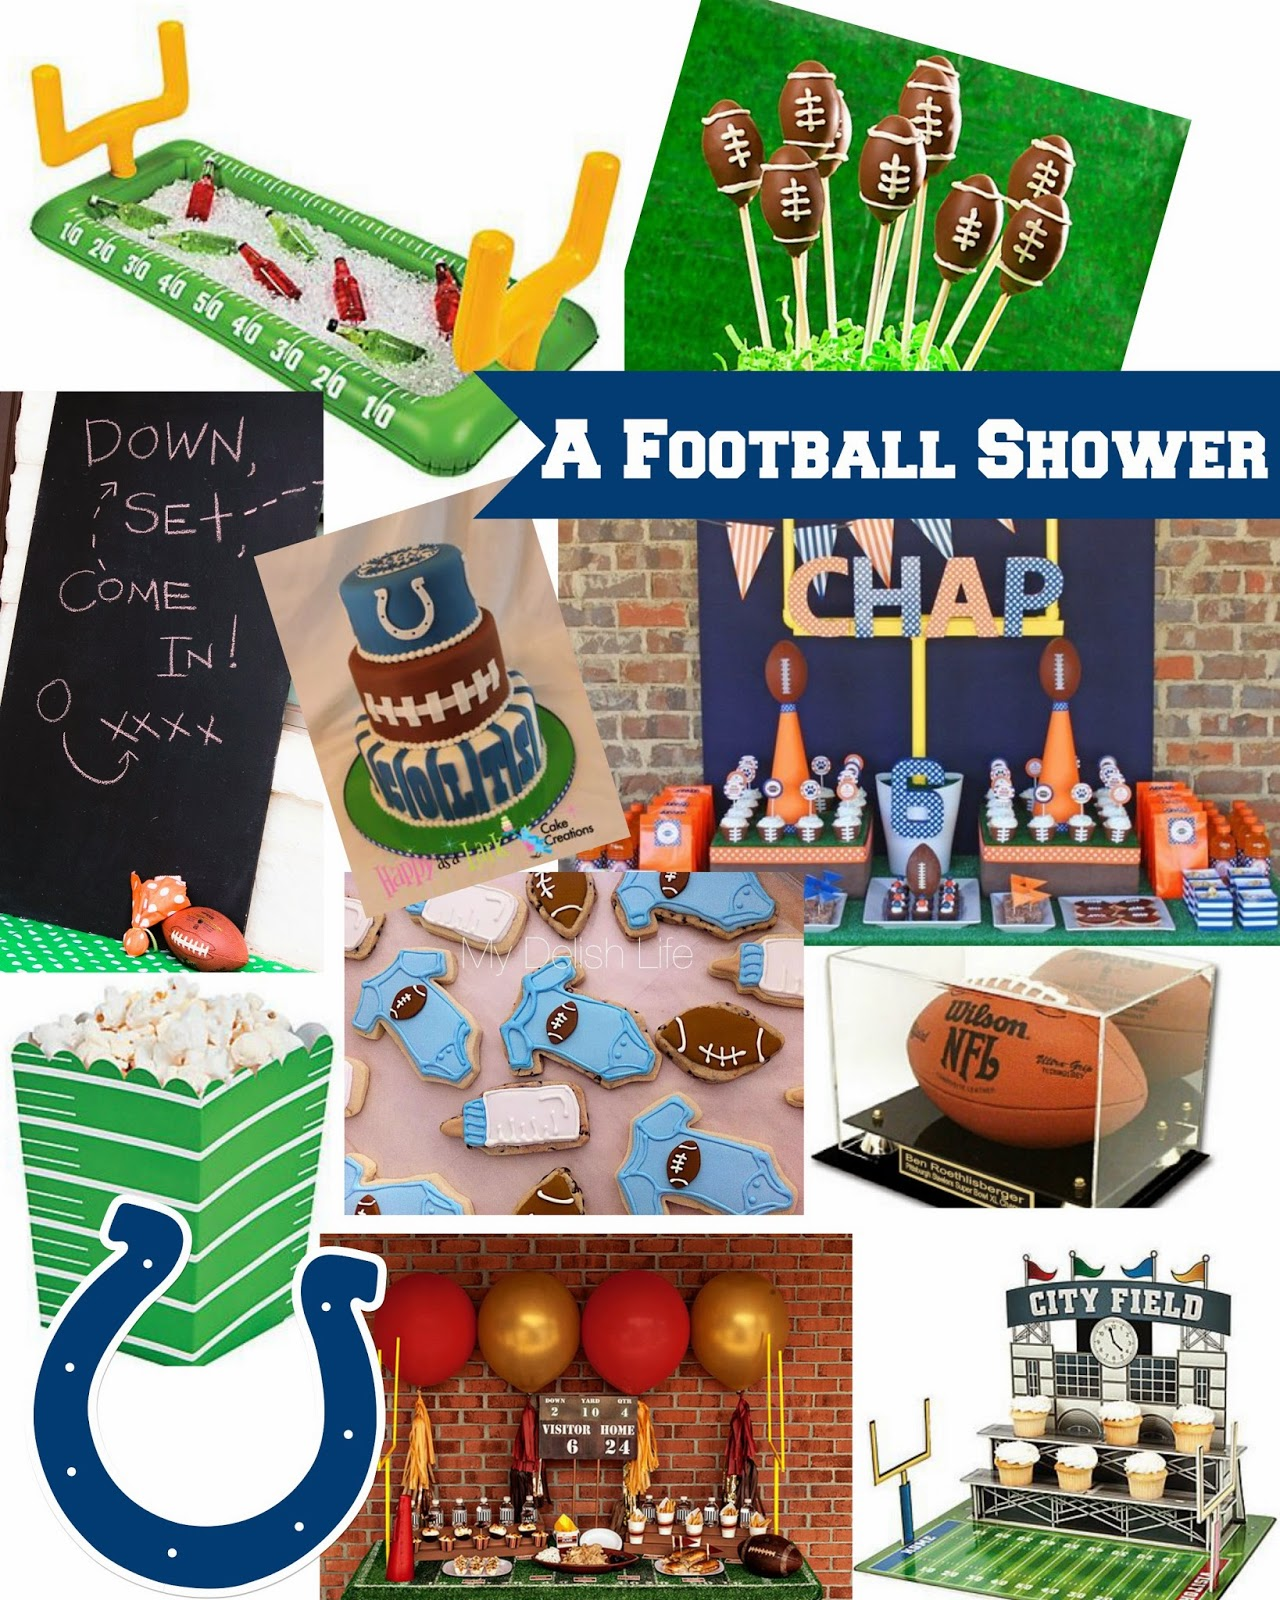 football themed baby shower shipwrecked on fabulous island